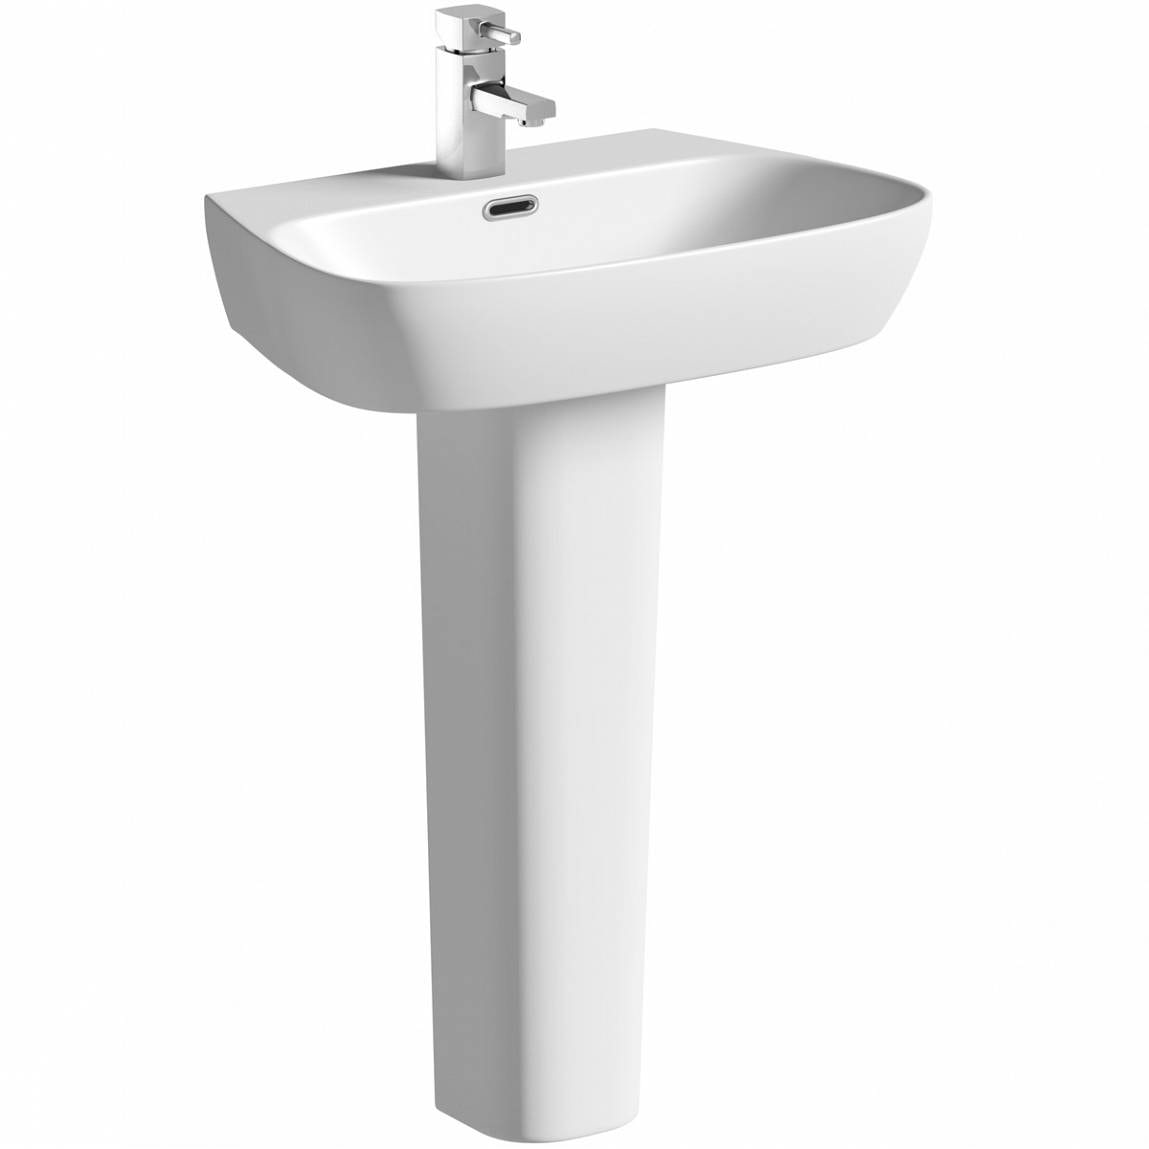 Mode Foster 1 tap hole full pedestal basin 600mm with waste